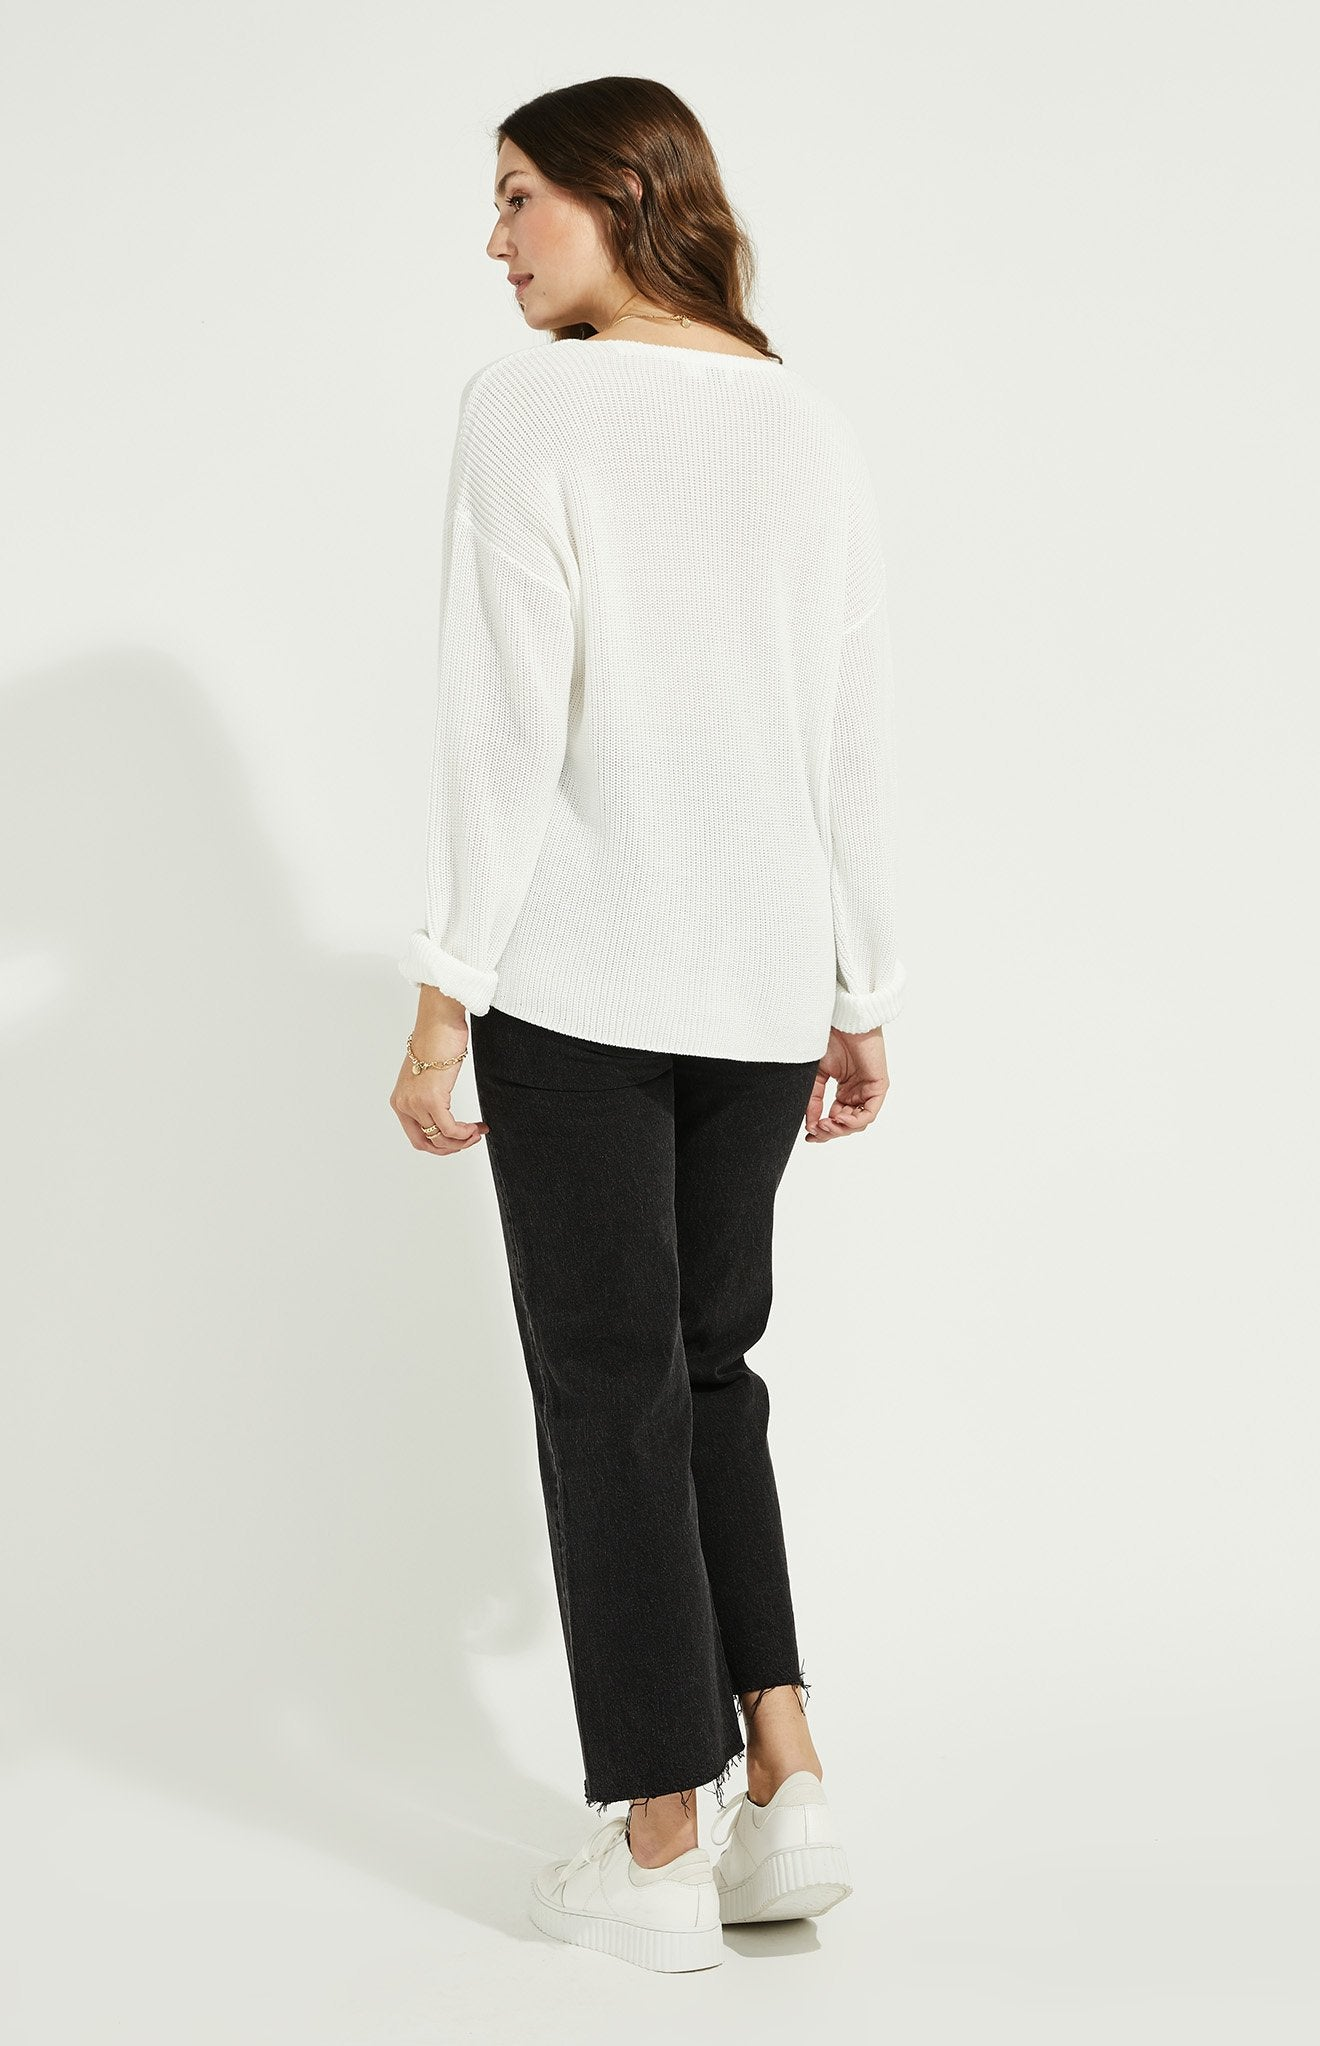 The Tucker Pullover by Gentle Fawn